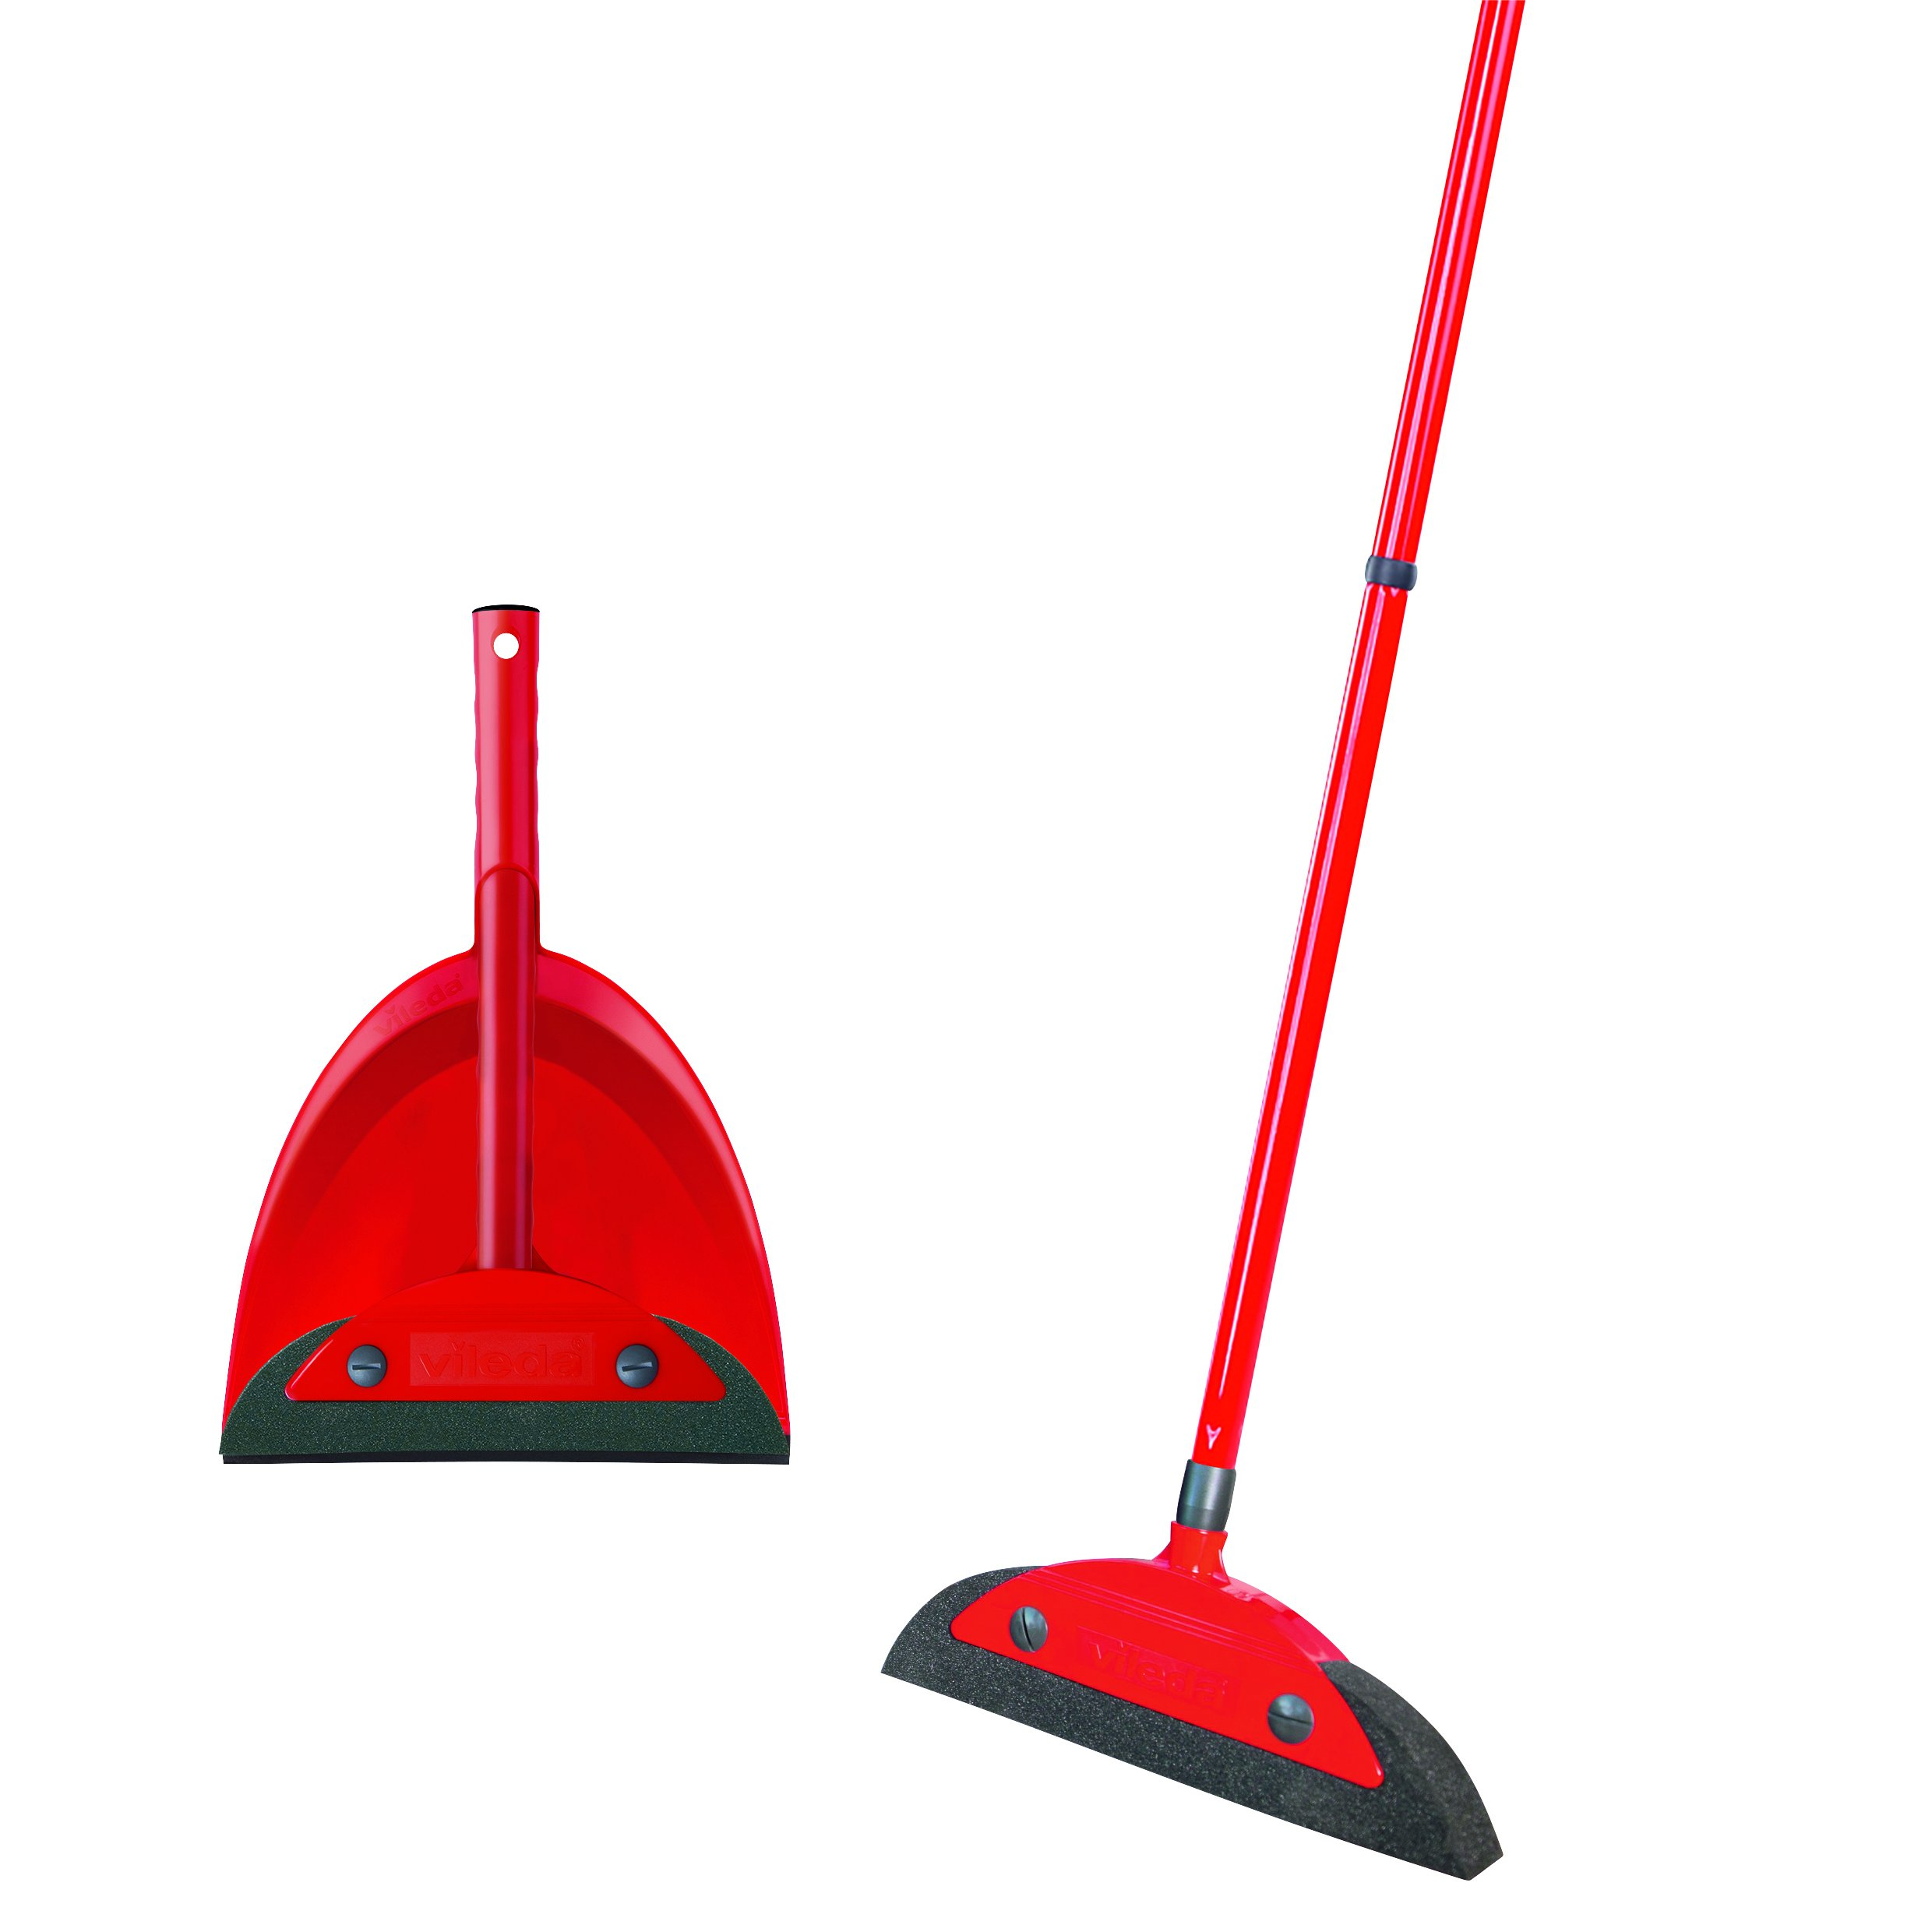 Vileda 158736Super Classic Broom with Triangular Handle and Super Duster Classic Sweeping Set Broom Set–Red, 16x 49cm